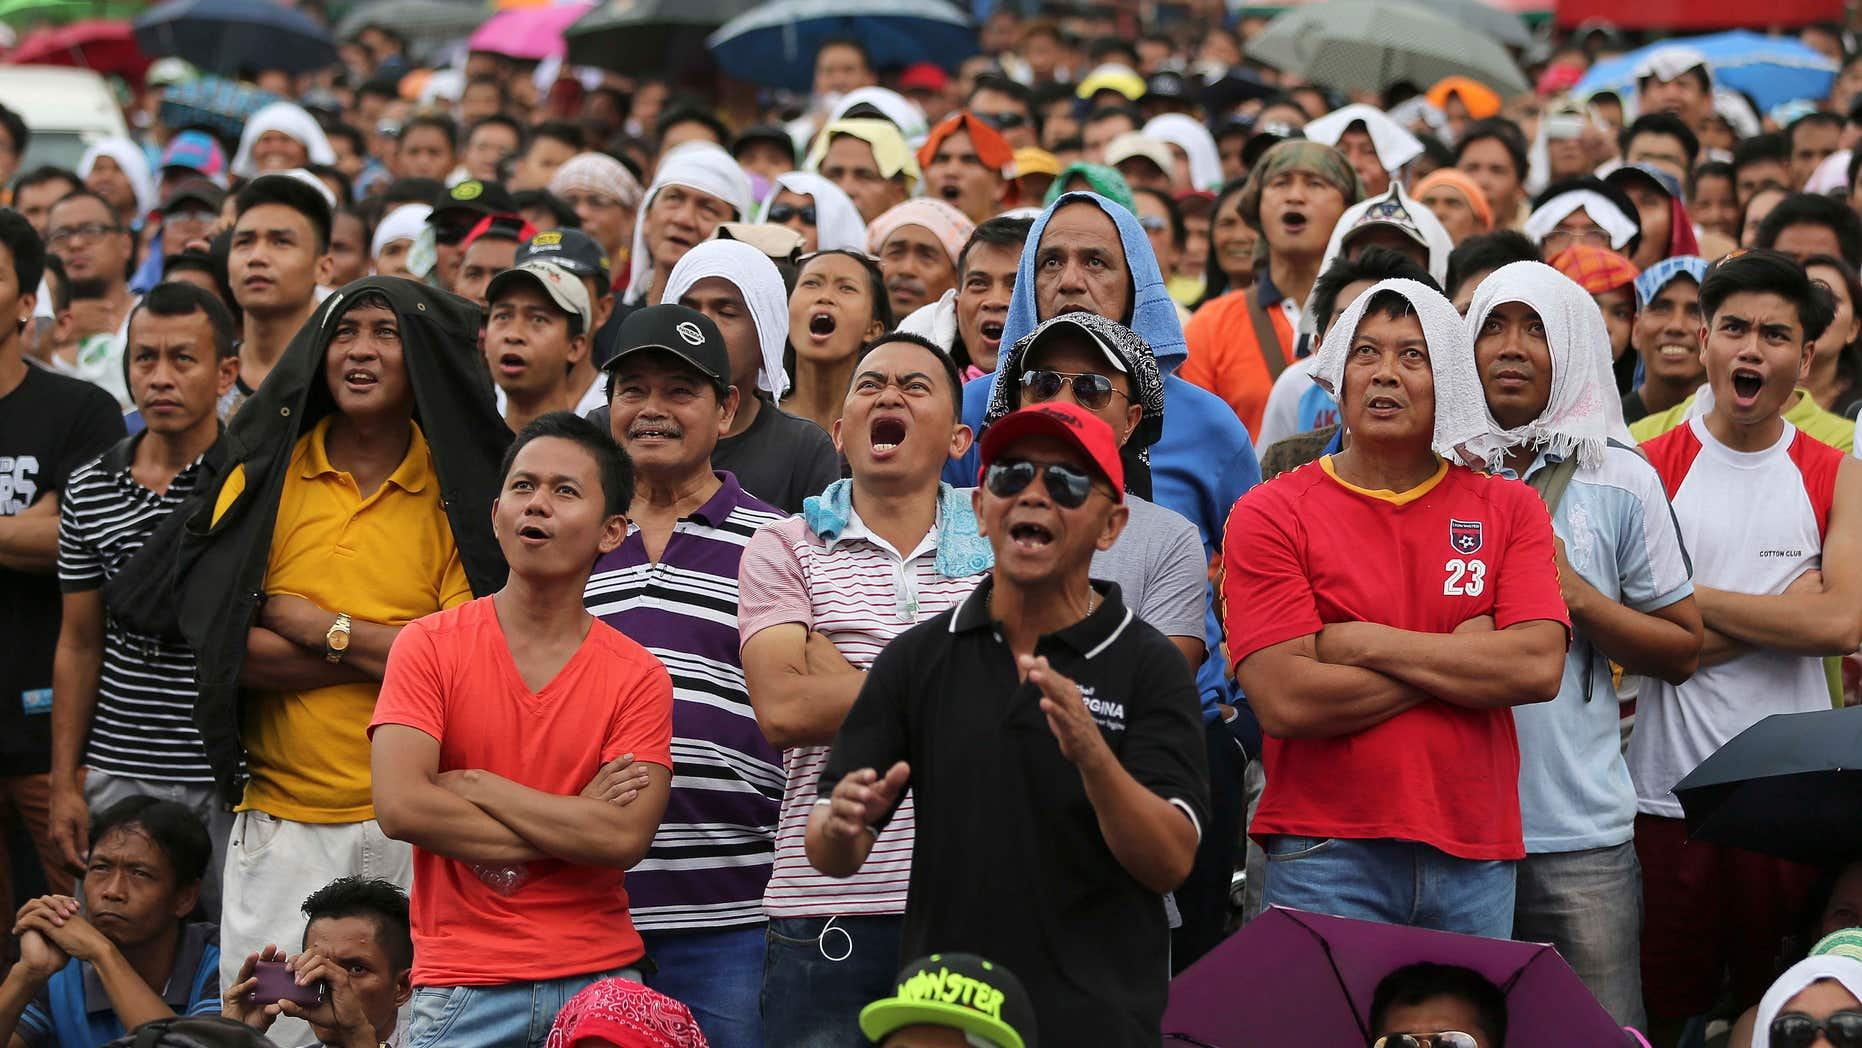 May 3, 2015: Filipinos watch a live satellite feed of the welterweight title fight between Filipino boxing hero Manny Pacquiao and Floyd Mayweather Jr. during a free public viewing in downtown Manila, Philippines.